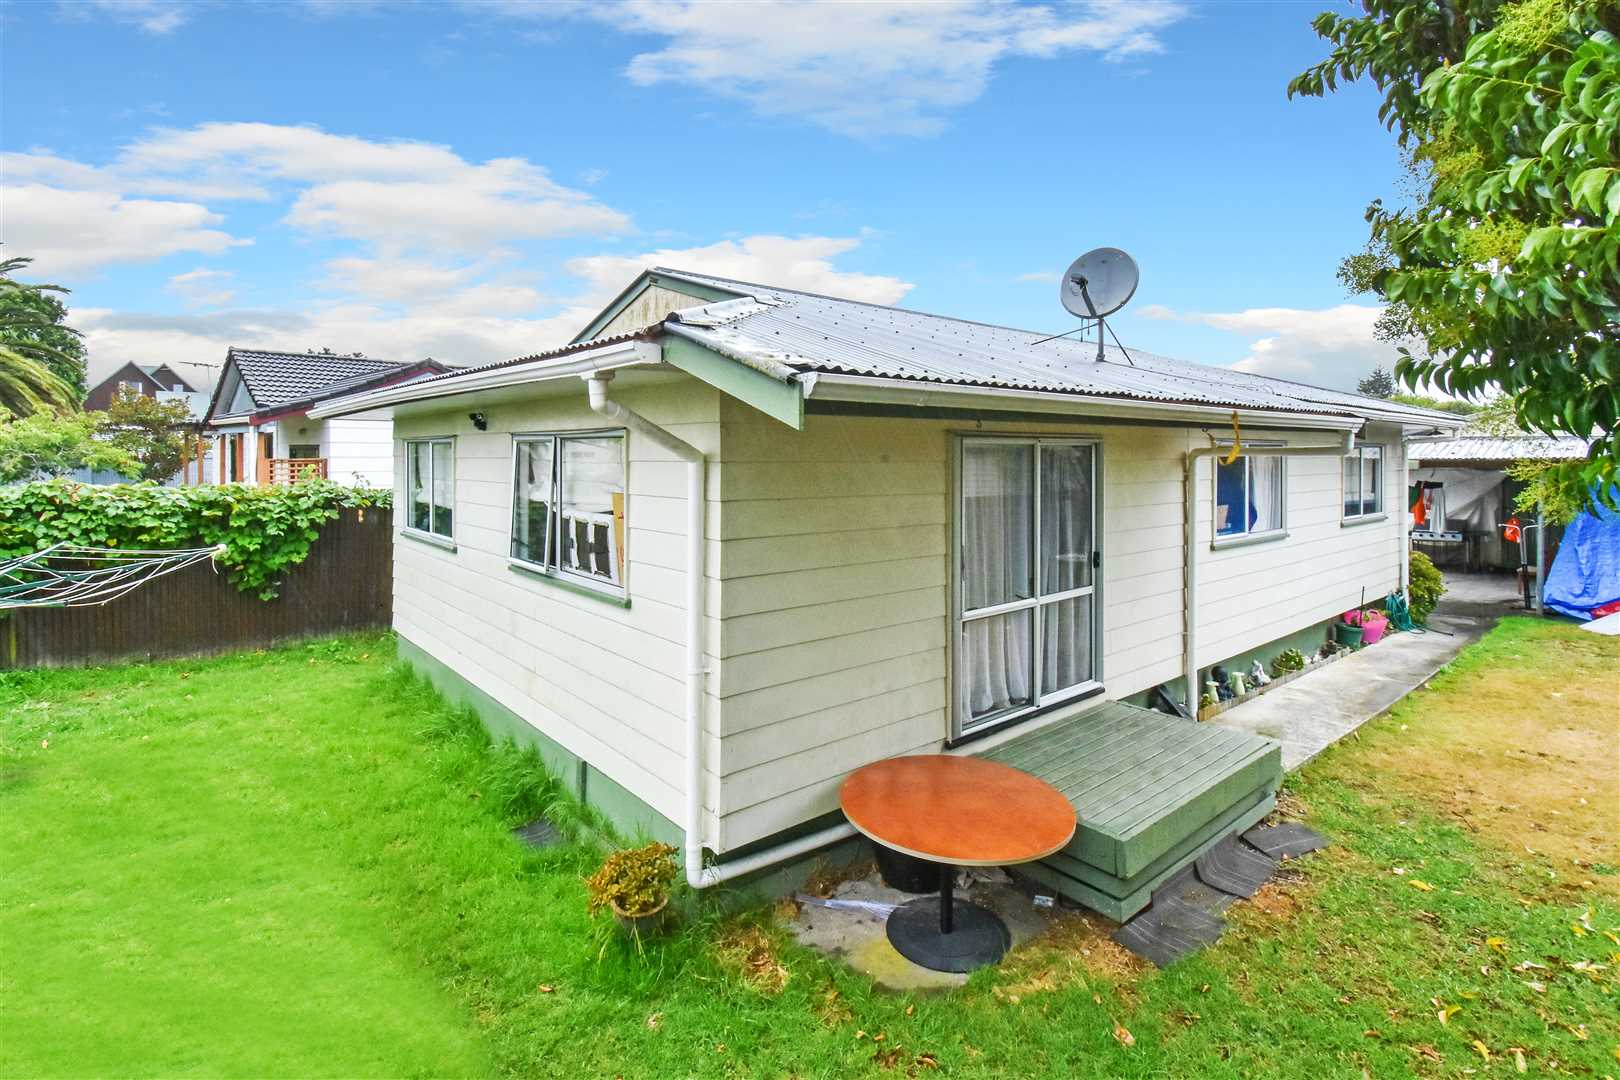 Affordable family home in the heart of Manurewa